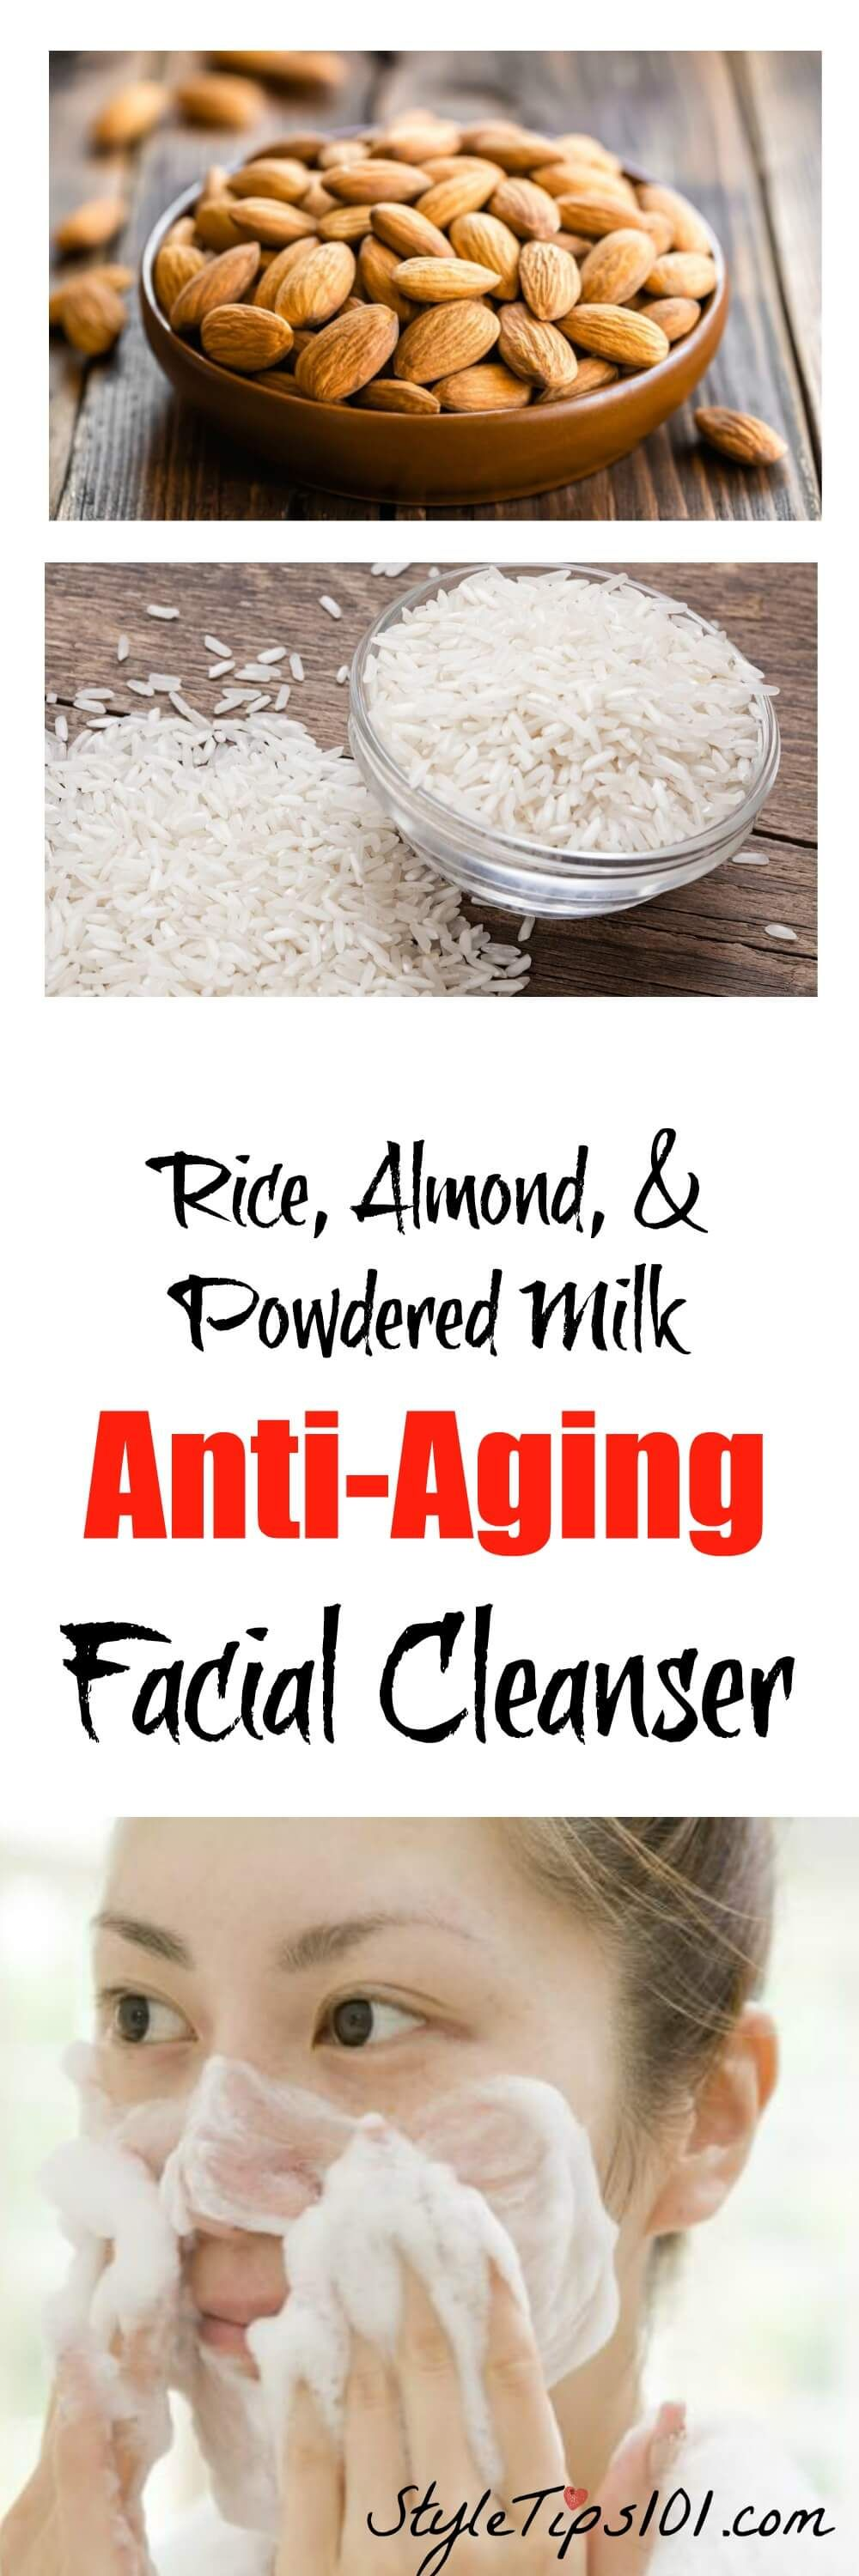 Homemade AntiAging Facial Cleanser For Dry Skin  Facial cleansers